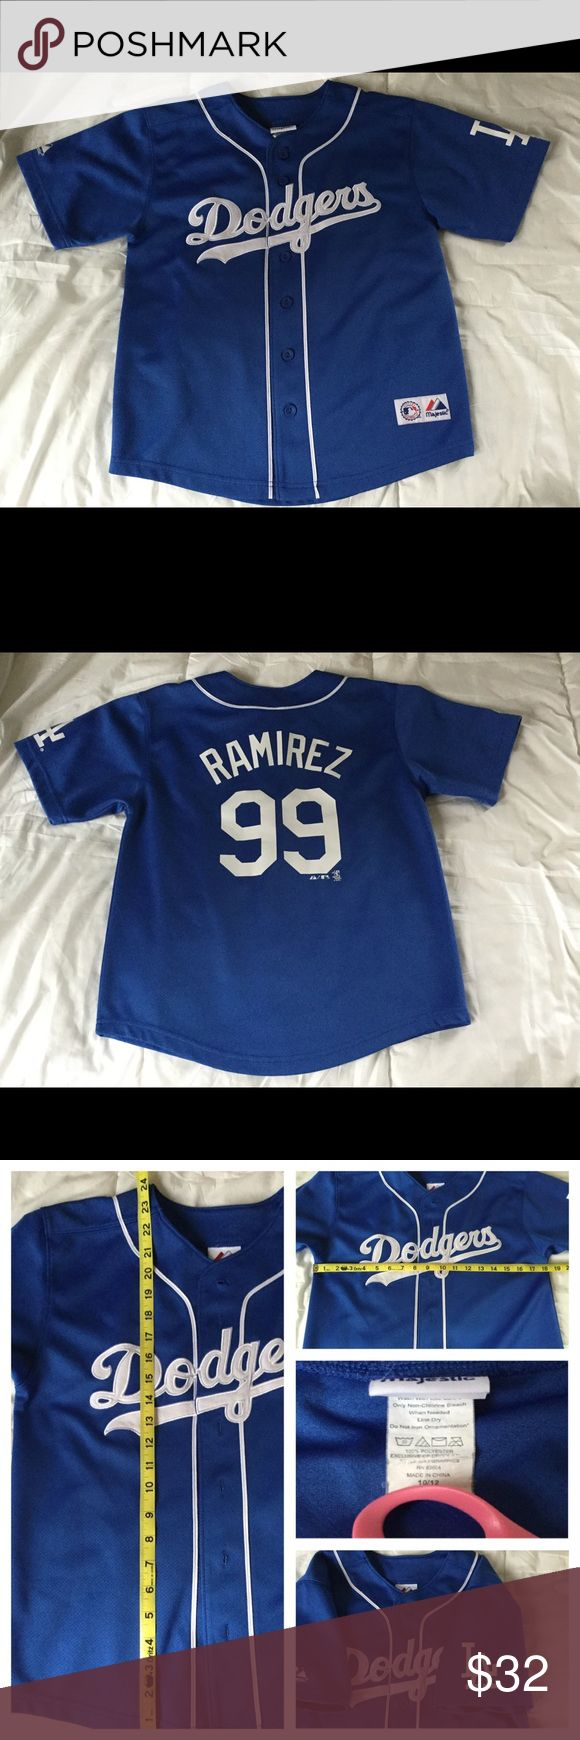 Boys Dodgers jersey shirt Boys baseball jersey in excellent used condition. No stains or tears. Size is boys 10/12 Majestic Shirts & Tops Tees - Short Sleeve